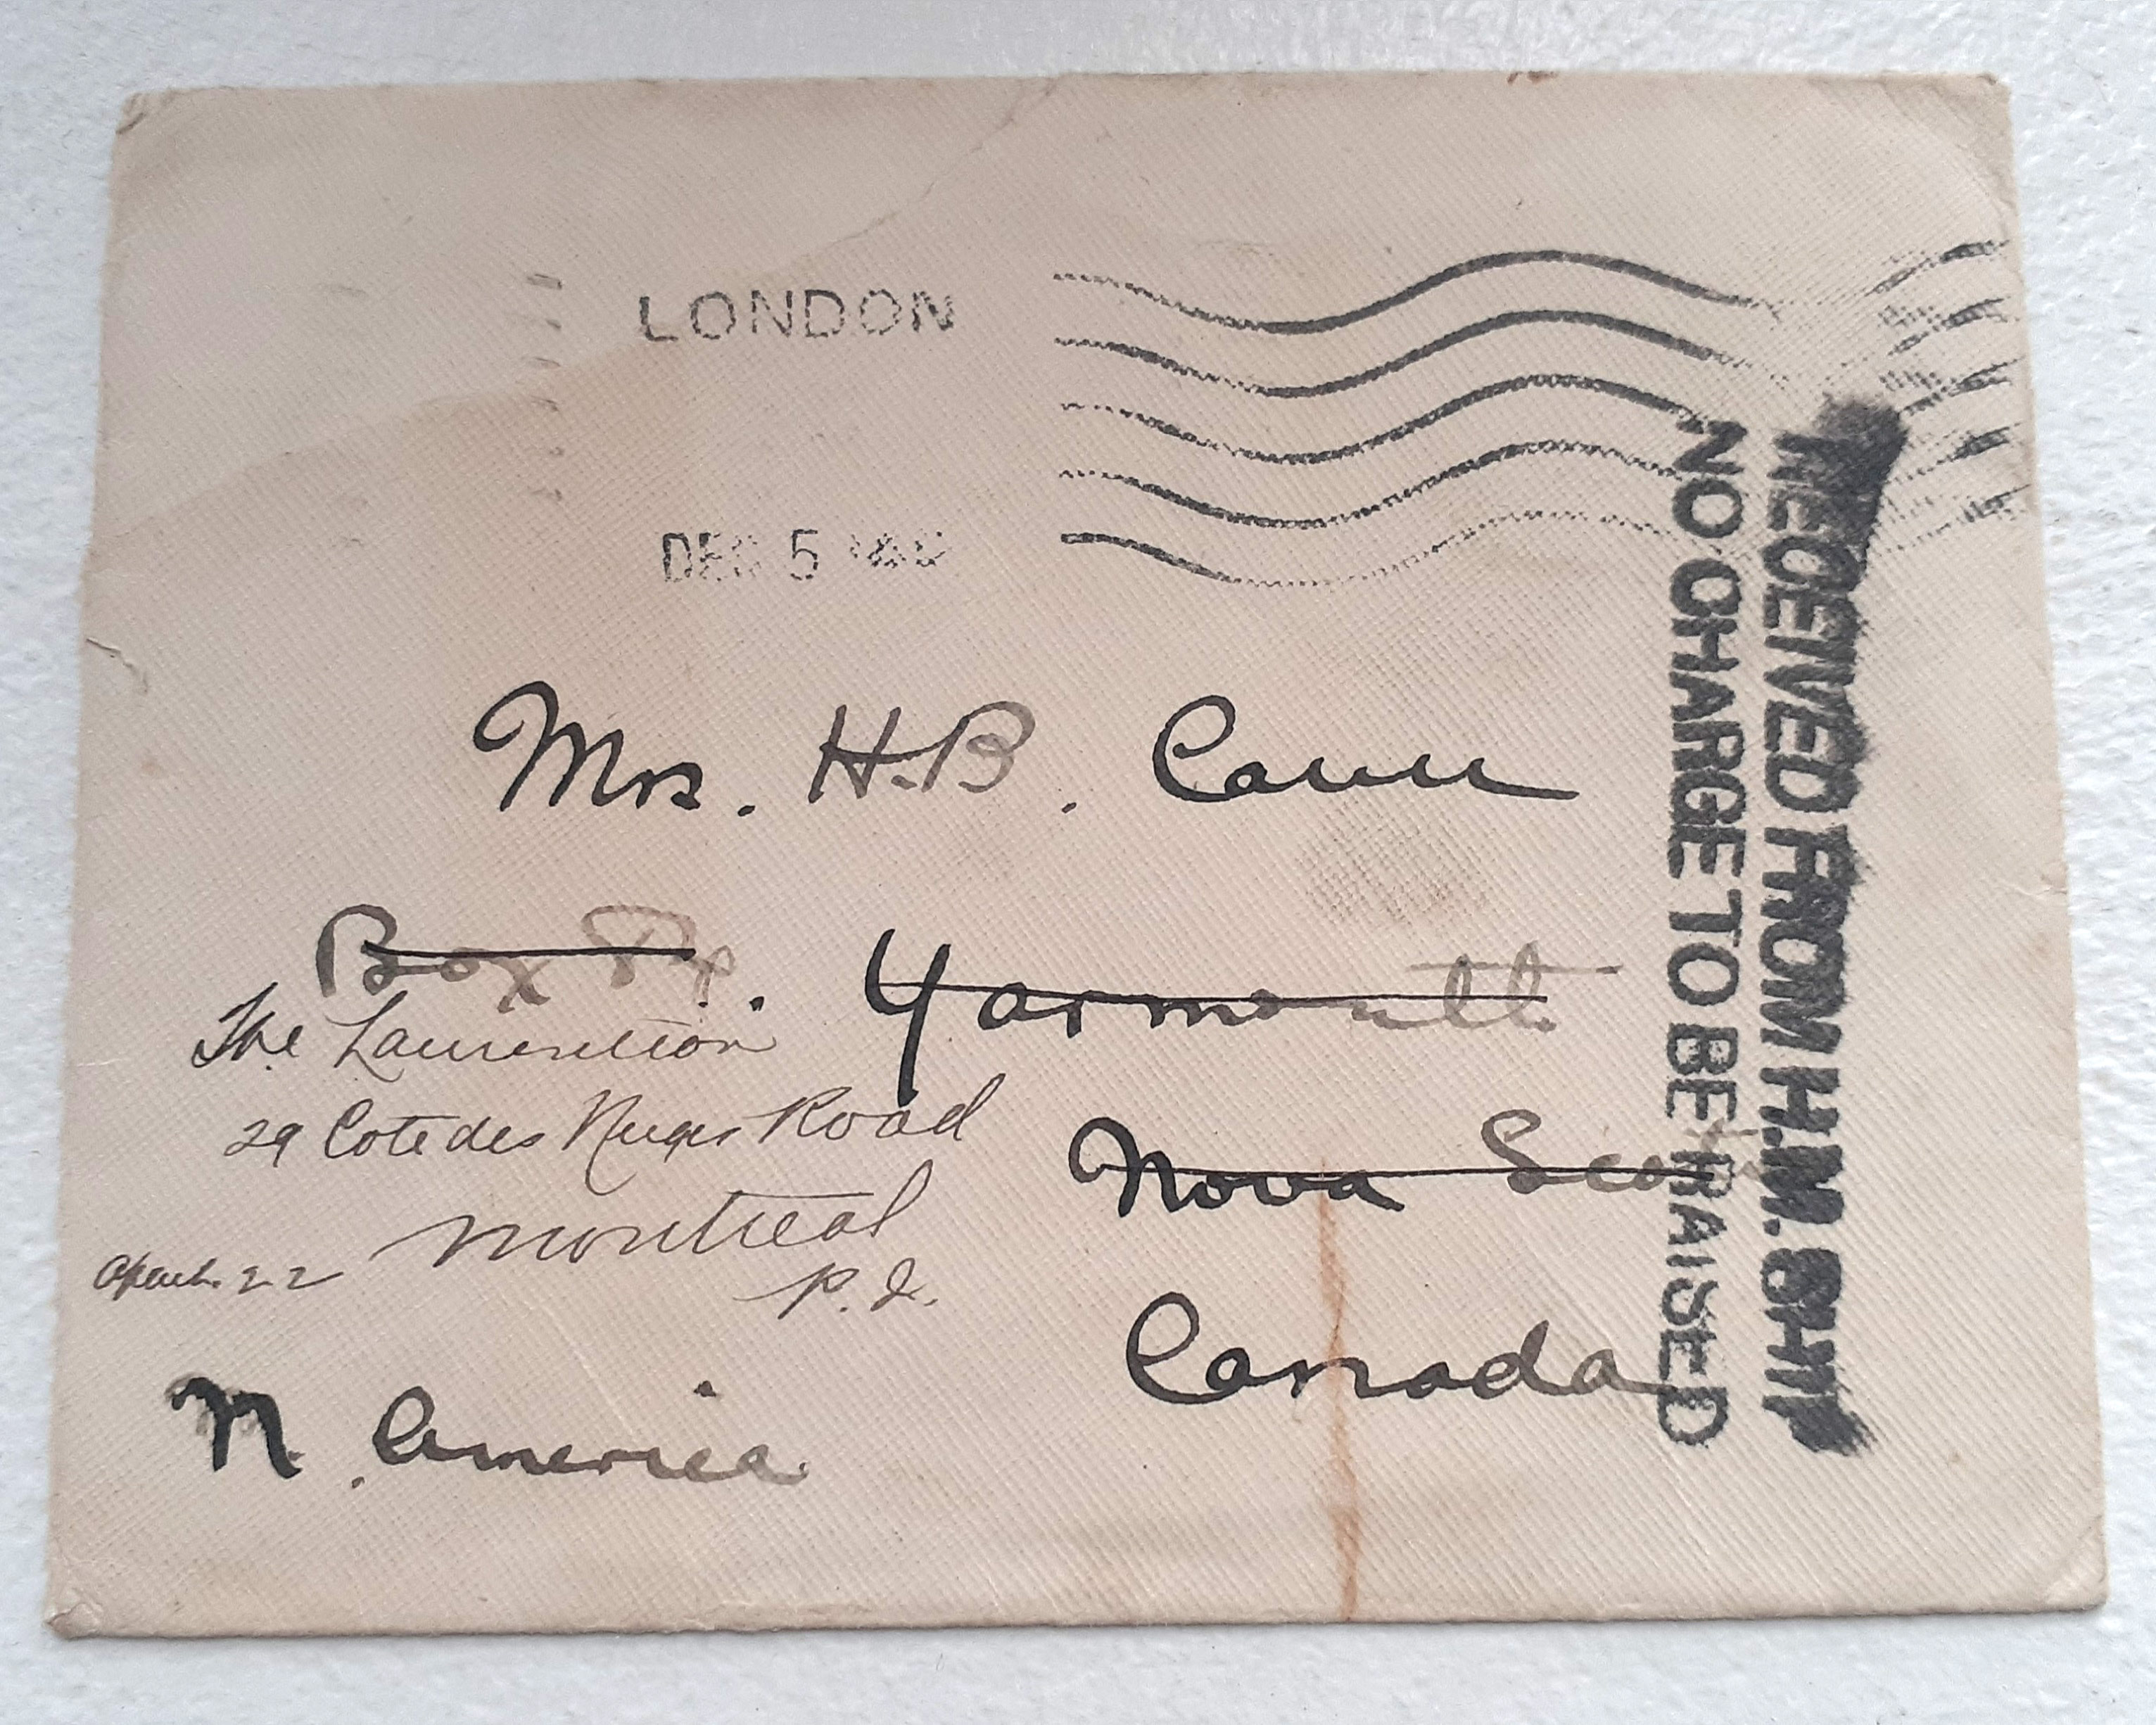 Letter from Midshipman Malcom Cann sent to his mother in Yarmouth, N.S., just before he was lost on HMS Good Hope. It had been forwarded from England, December 1914.